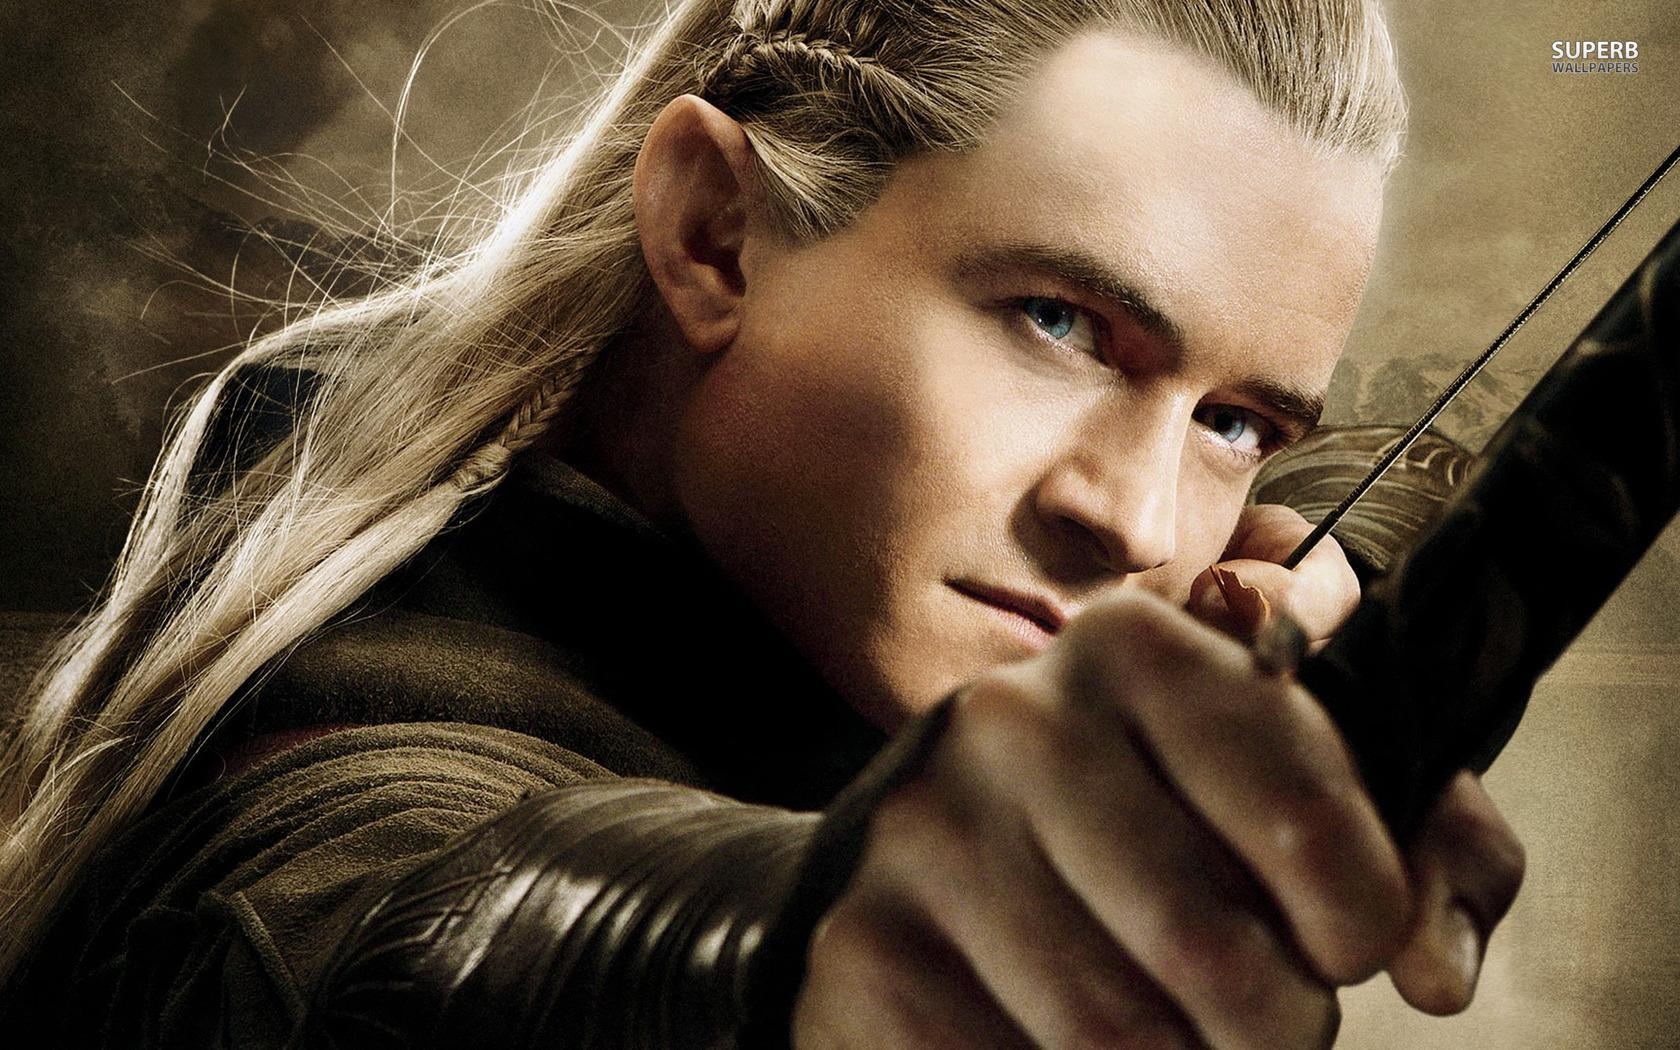 Legolas Greenleaf! :D